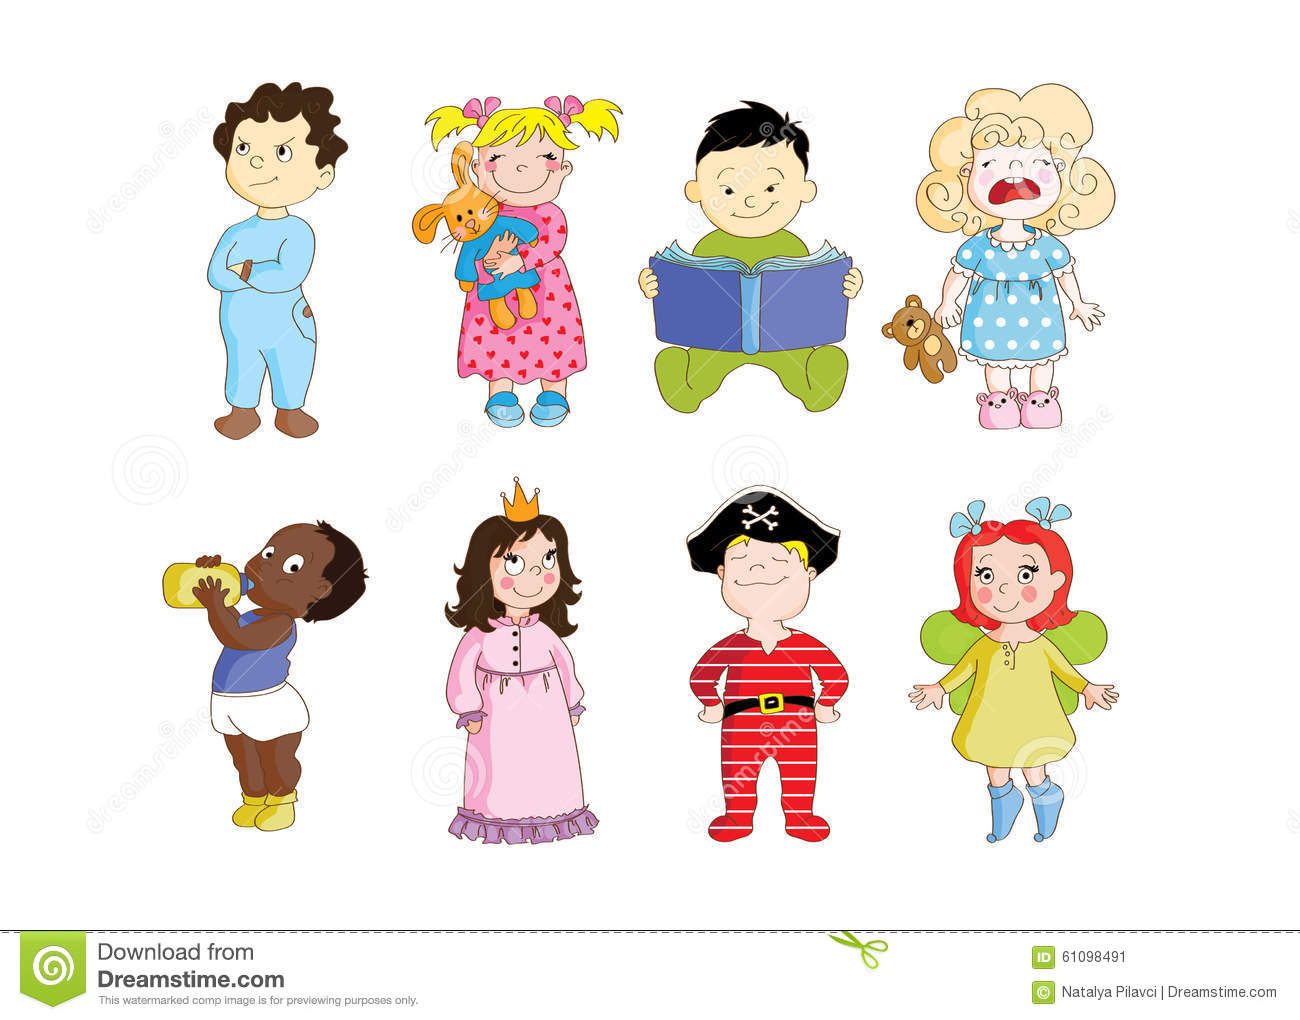 royalty free vector - Free Cartoons For Toddlers